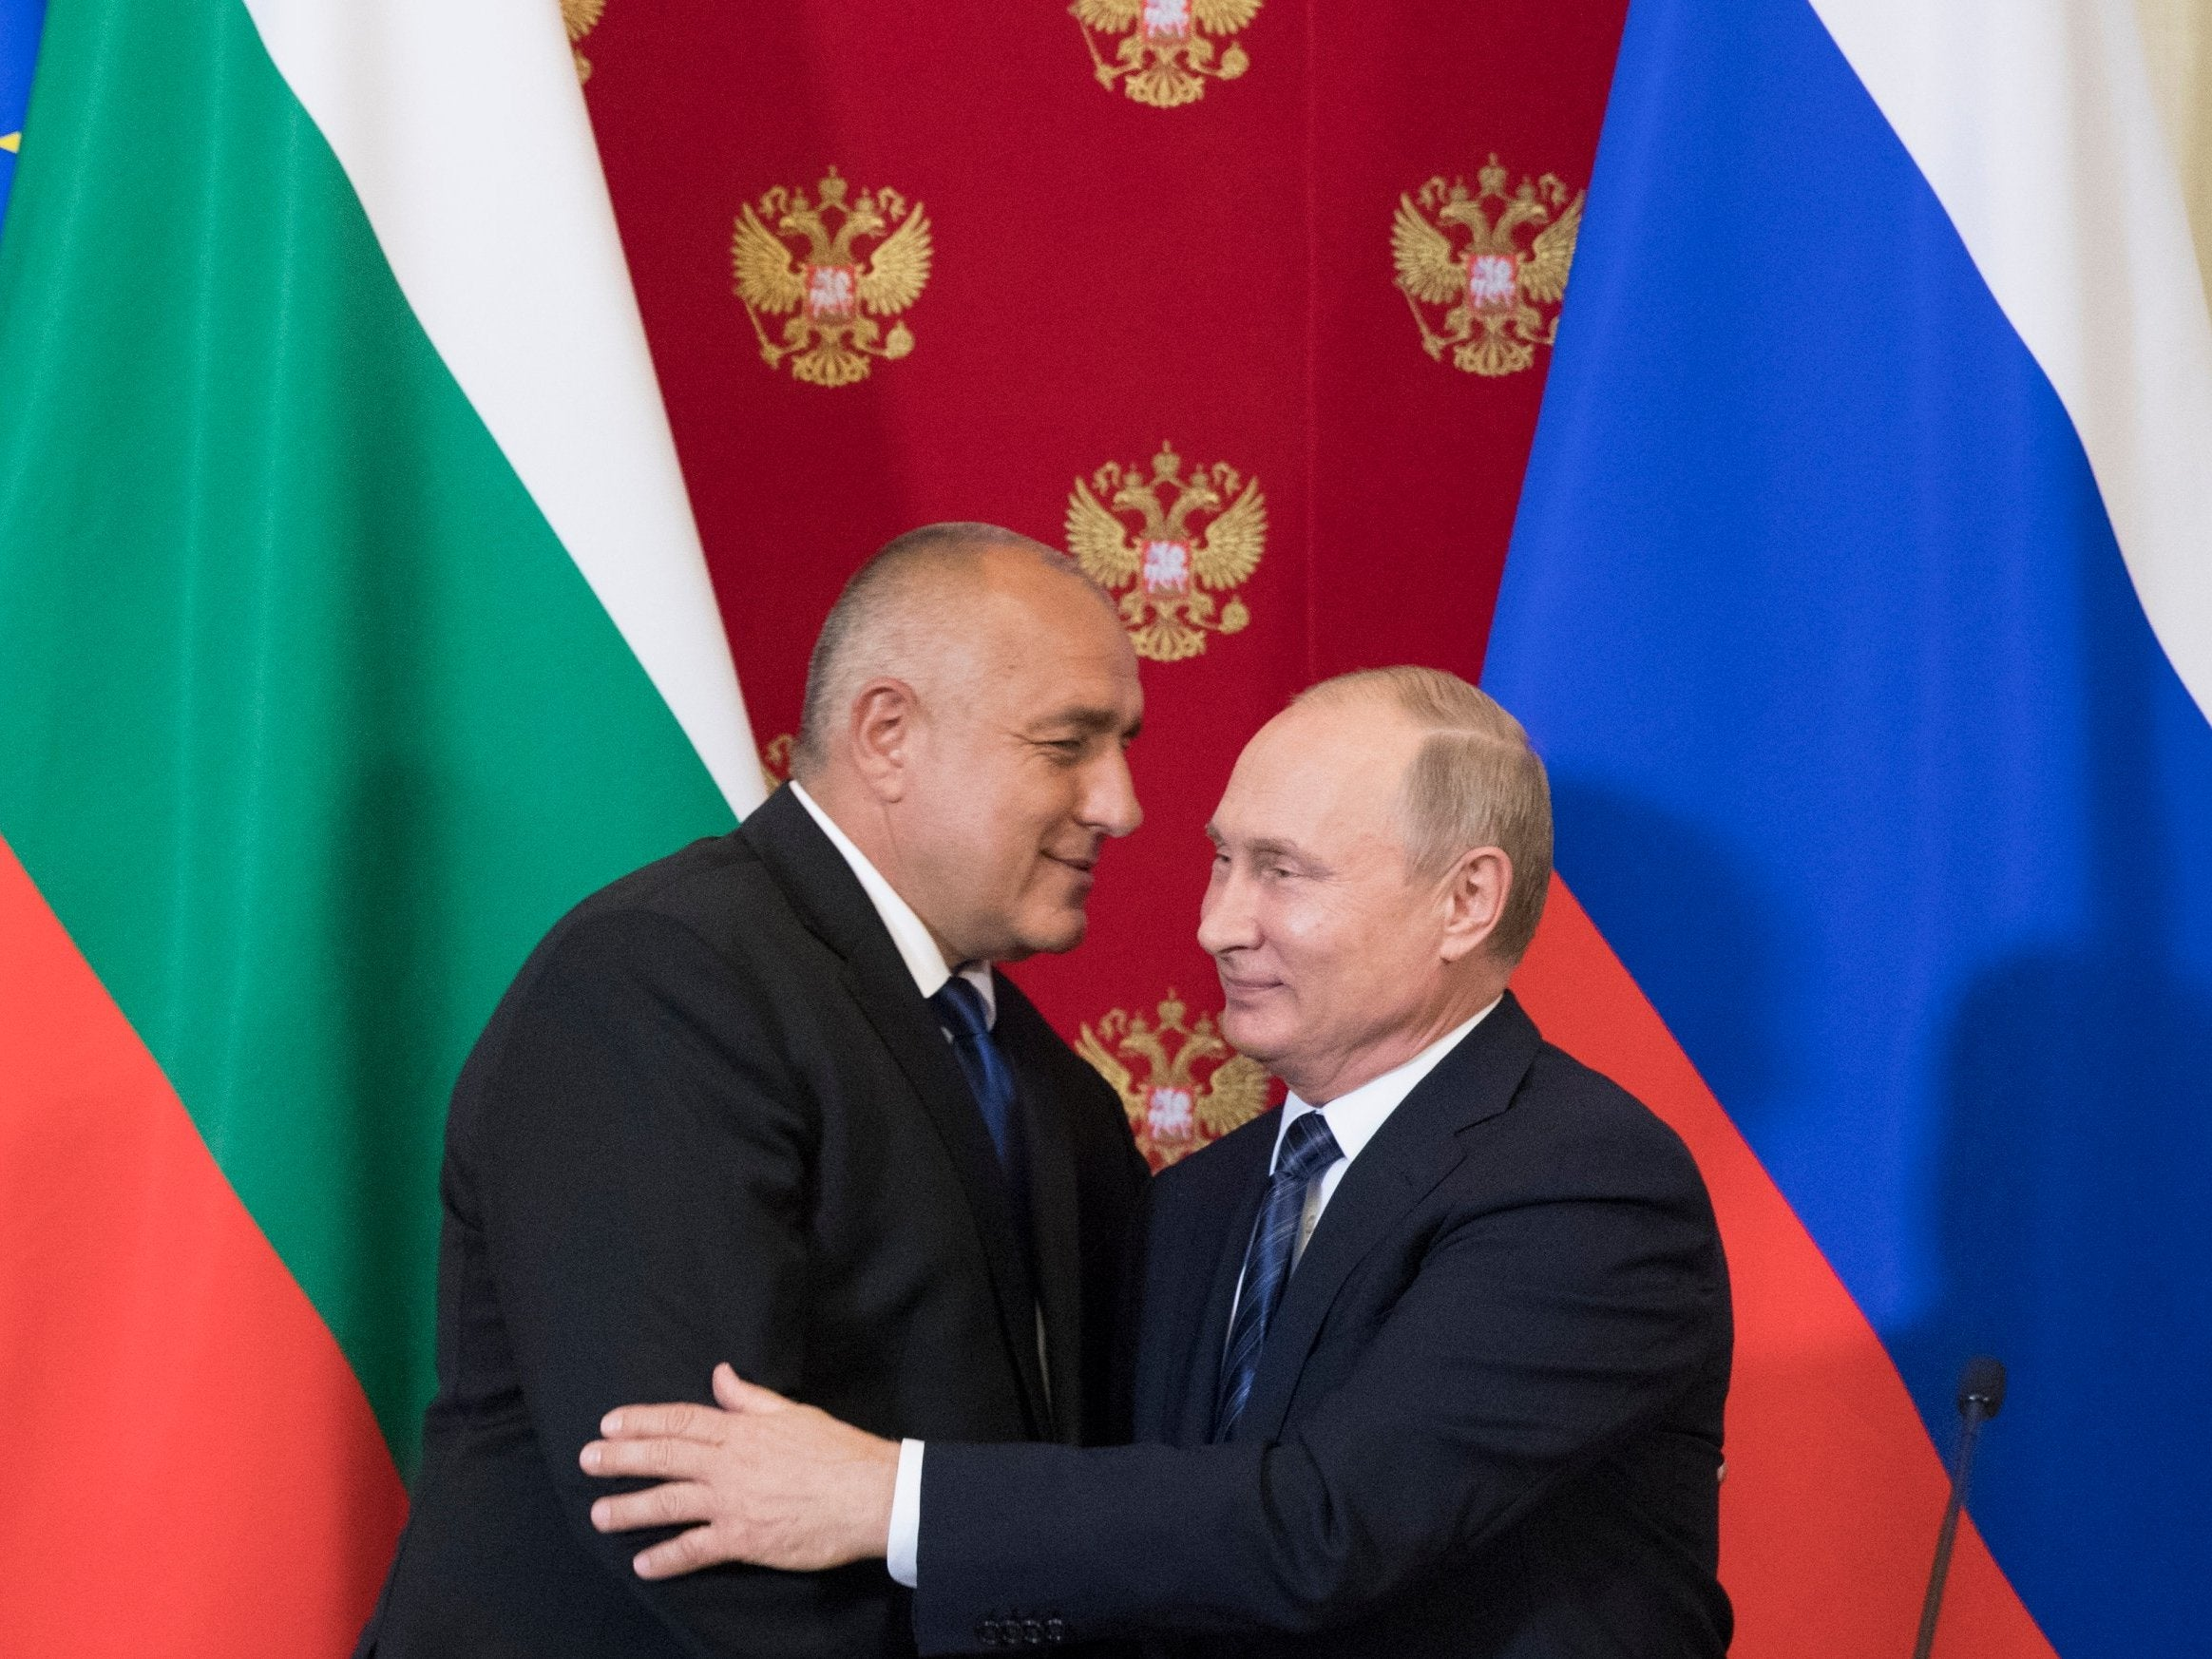 Are Bulgaria's strings still being pulled by the Kremlin?